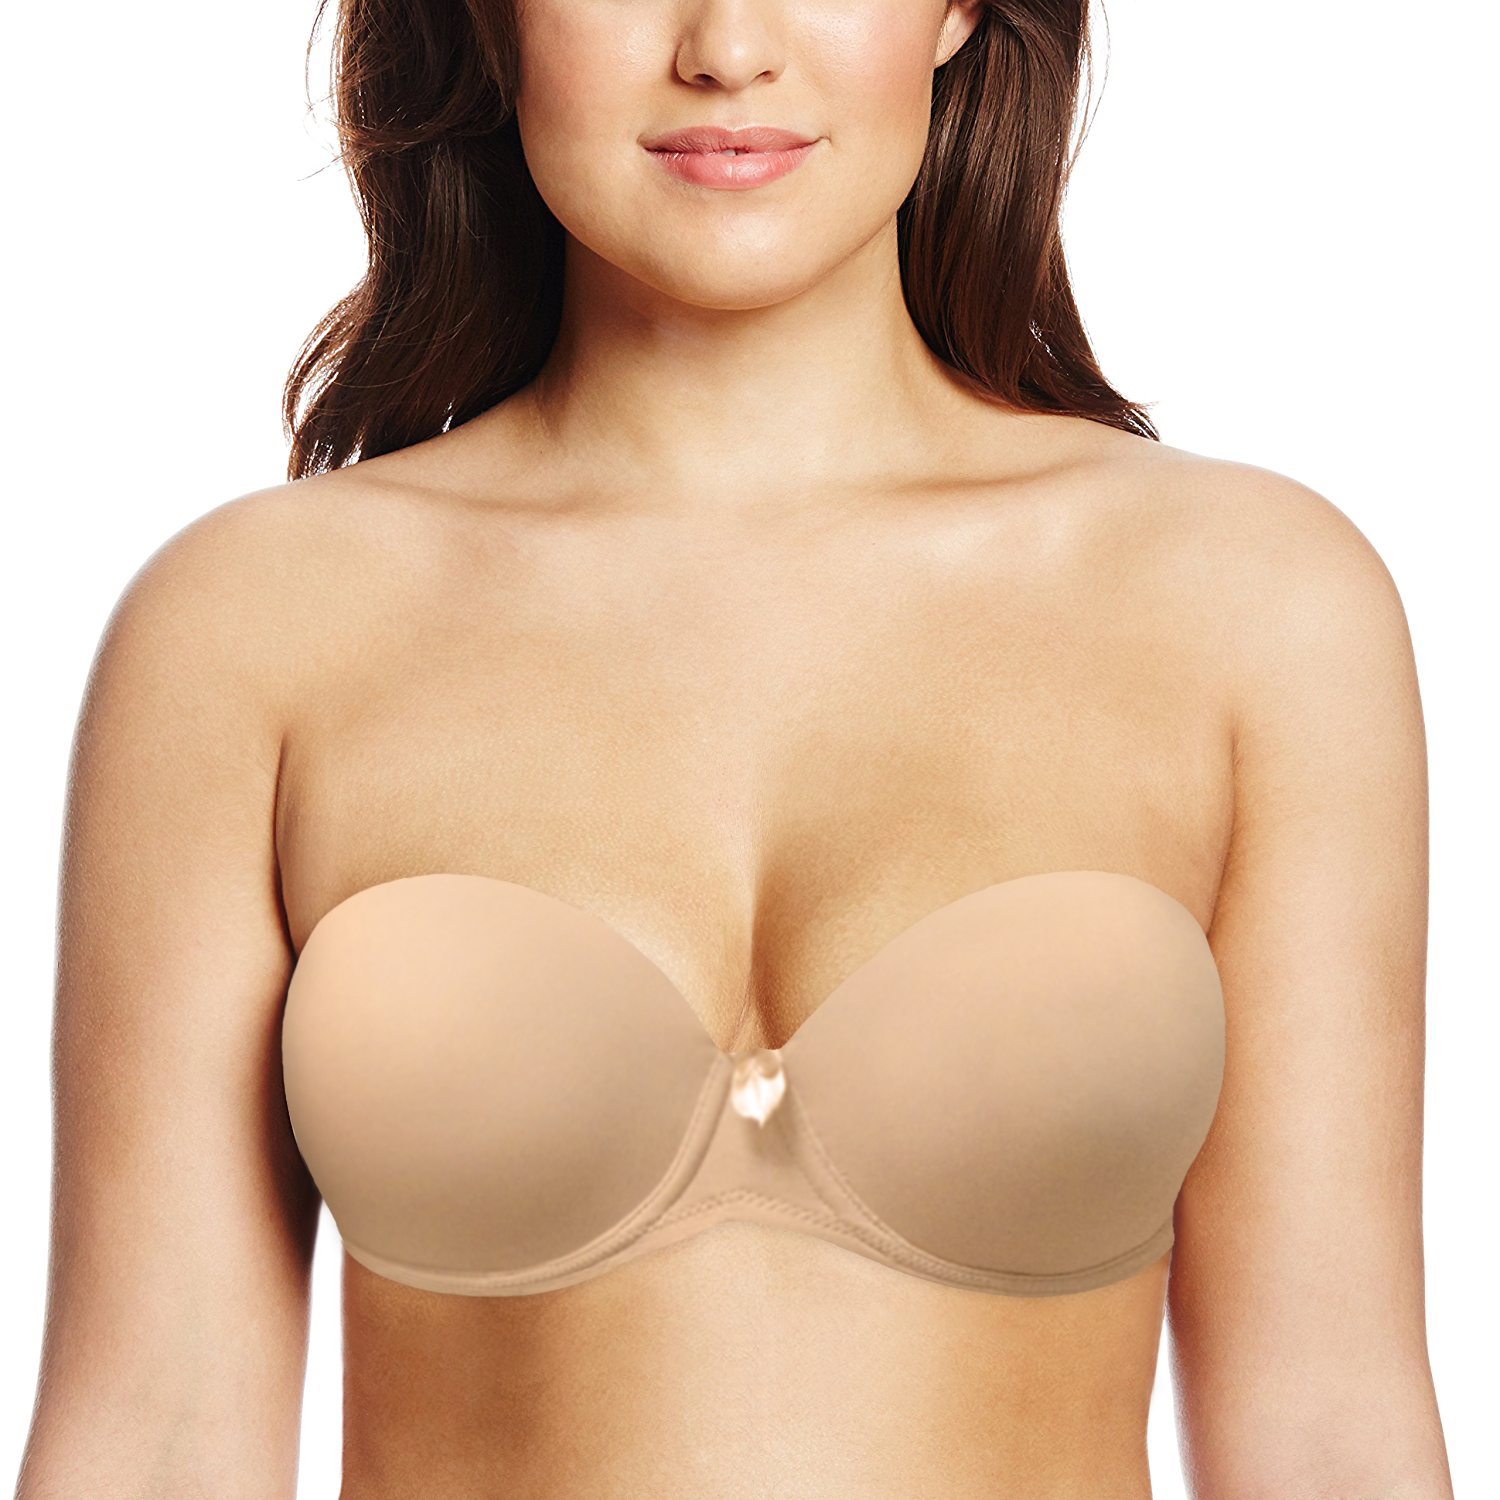 Watch Sexy Push Up Bra porn videos for free, here on tubidyindir.ga Discover the growing collection of high quality Most Relevant XXX movies and clips. No other sex tube is more popular and features more Sexy Push Up Bra scenes than Pornhub! Browse through our impressive selection of porn videos in HD quality on any device you own.